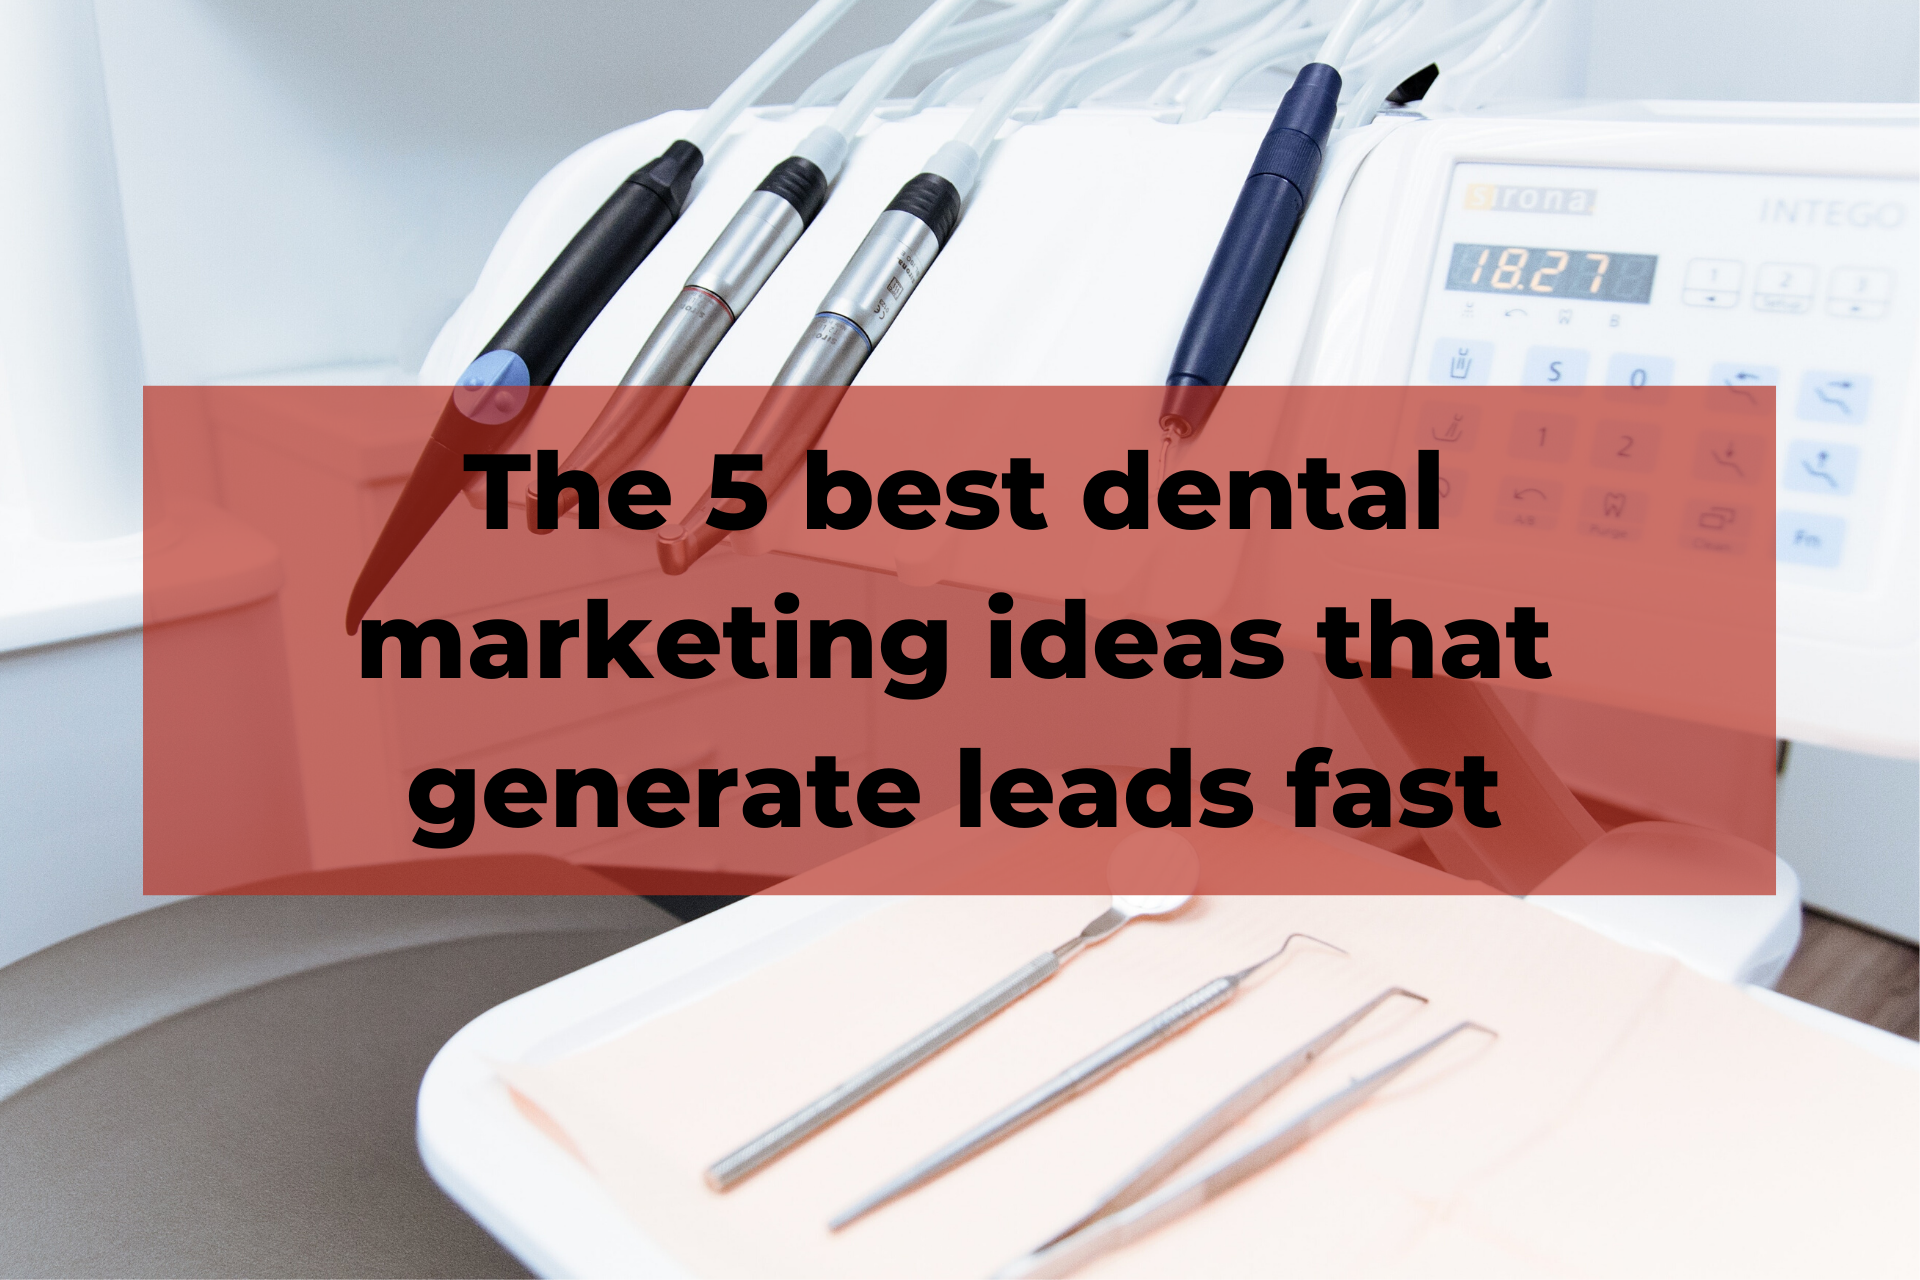 The 5 best dental marketing ideas that generate leads fast